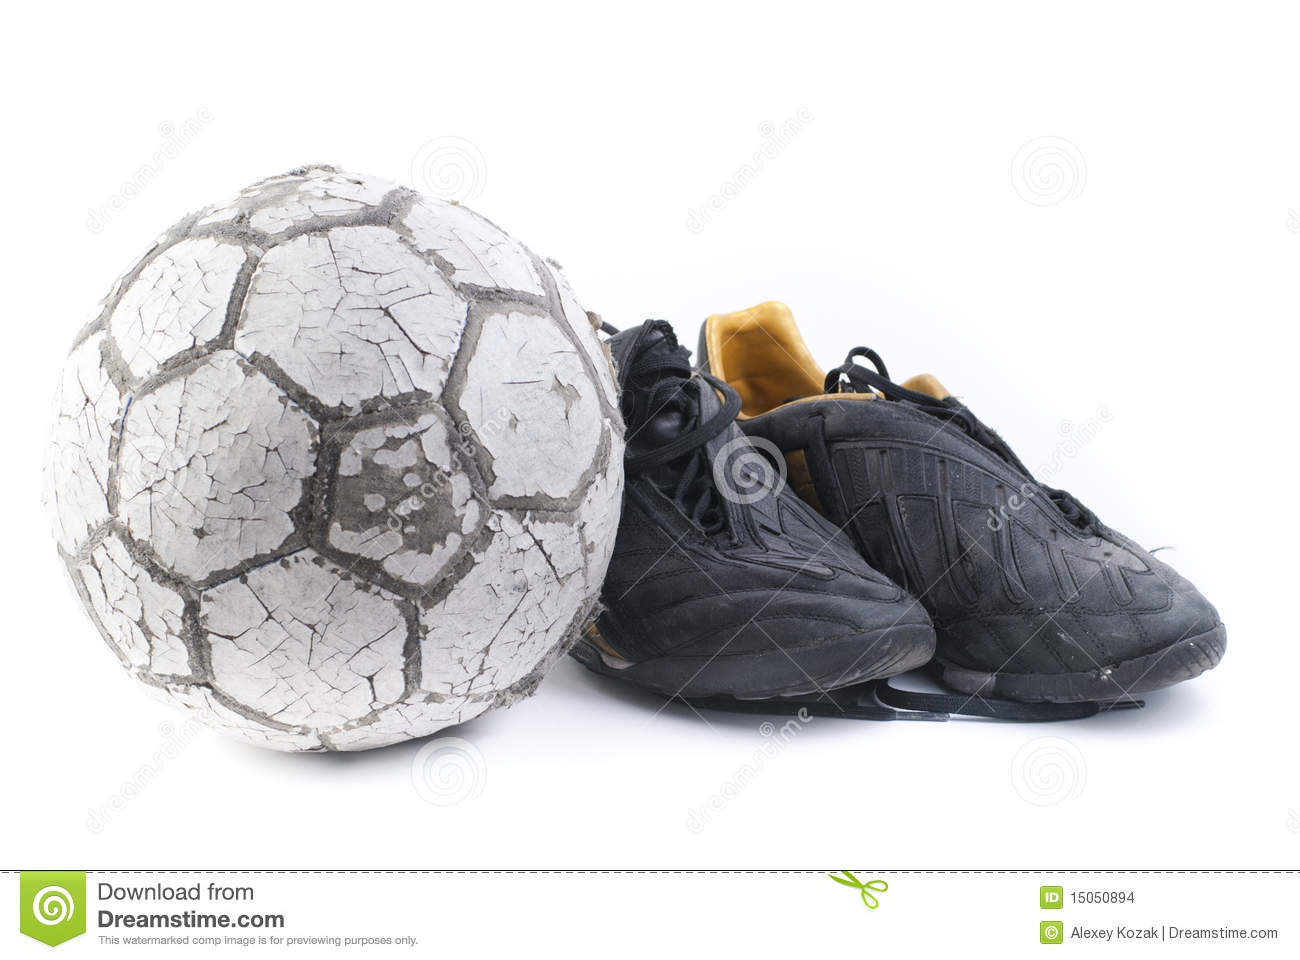 73dea46d4 Soccer Ball With Two Old Black Shoes Stock Photo - Image of athletic ...